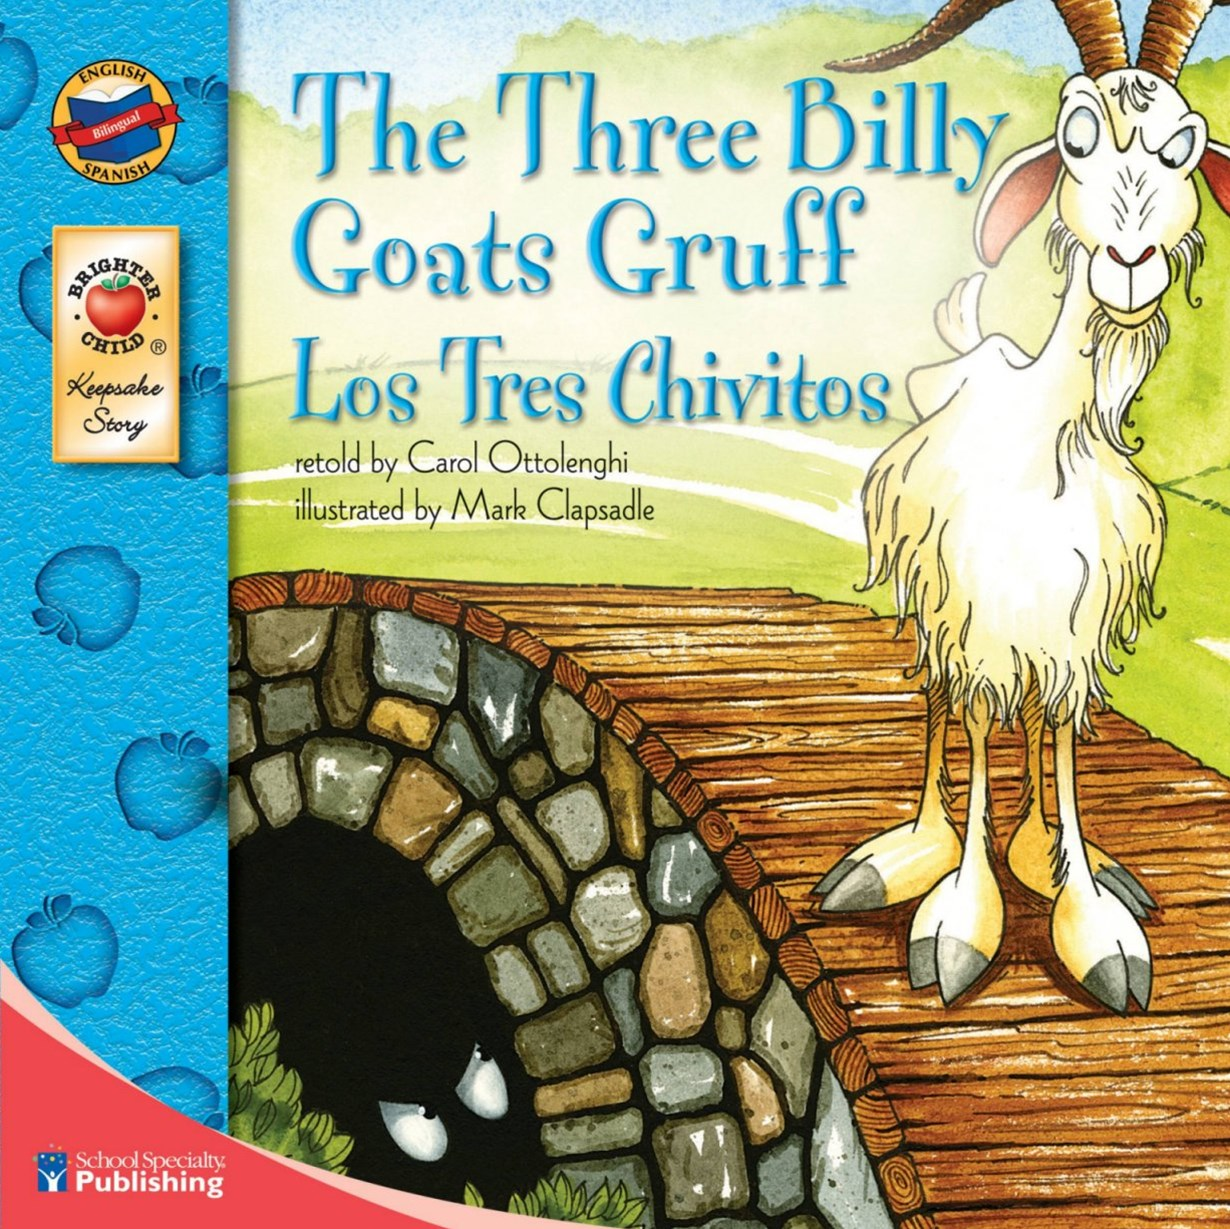 The Three Billy Goats Gruff (Los Tres Chivitos)